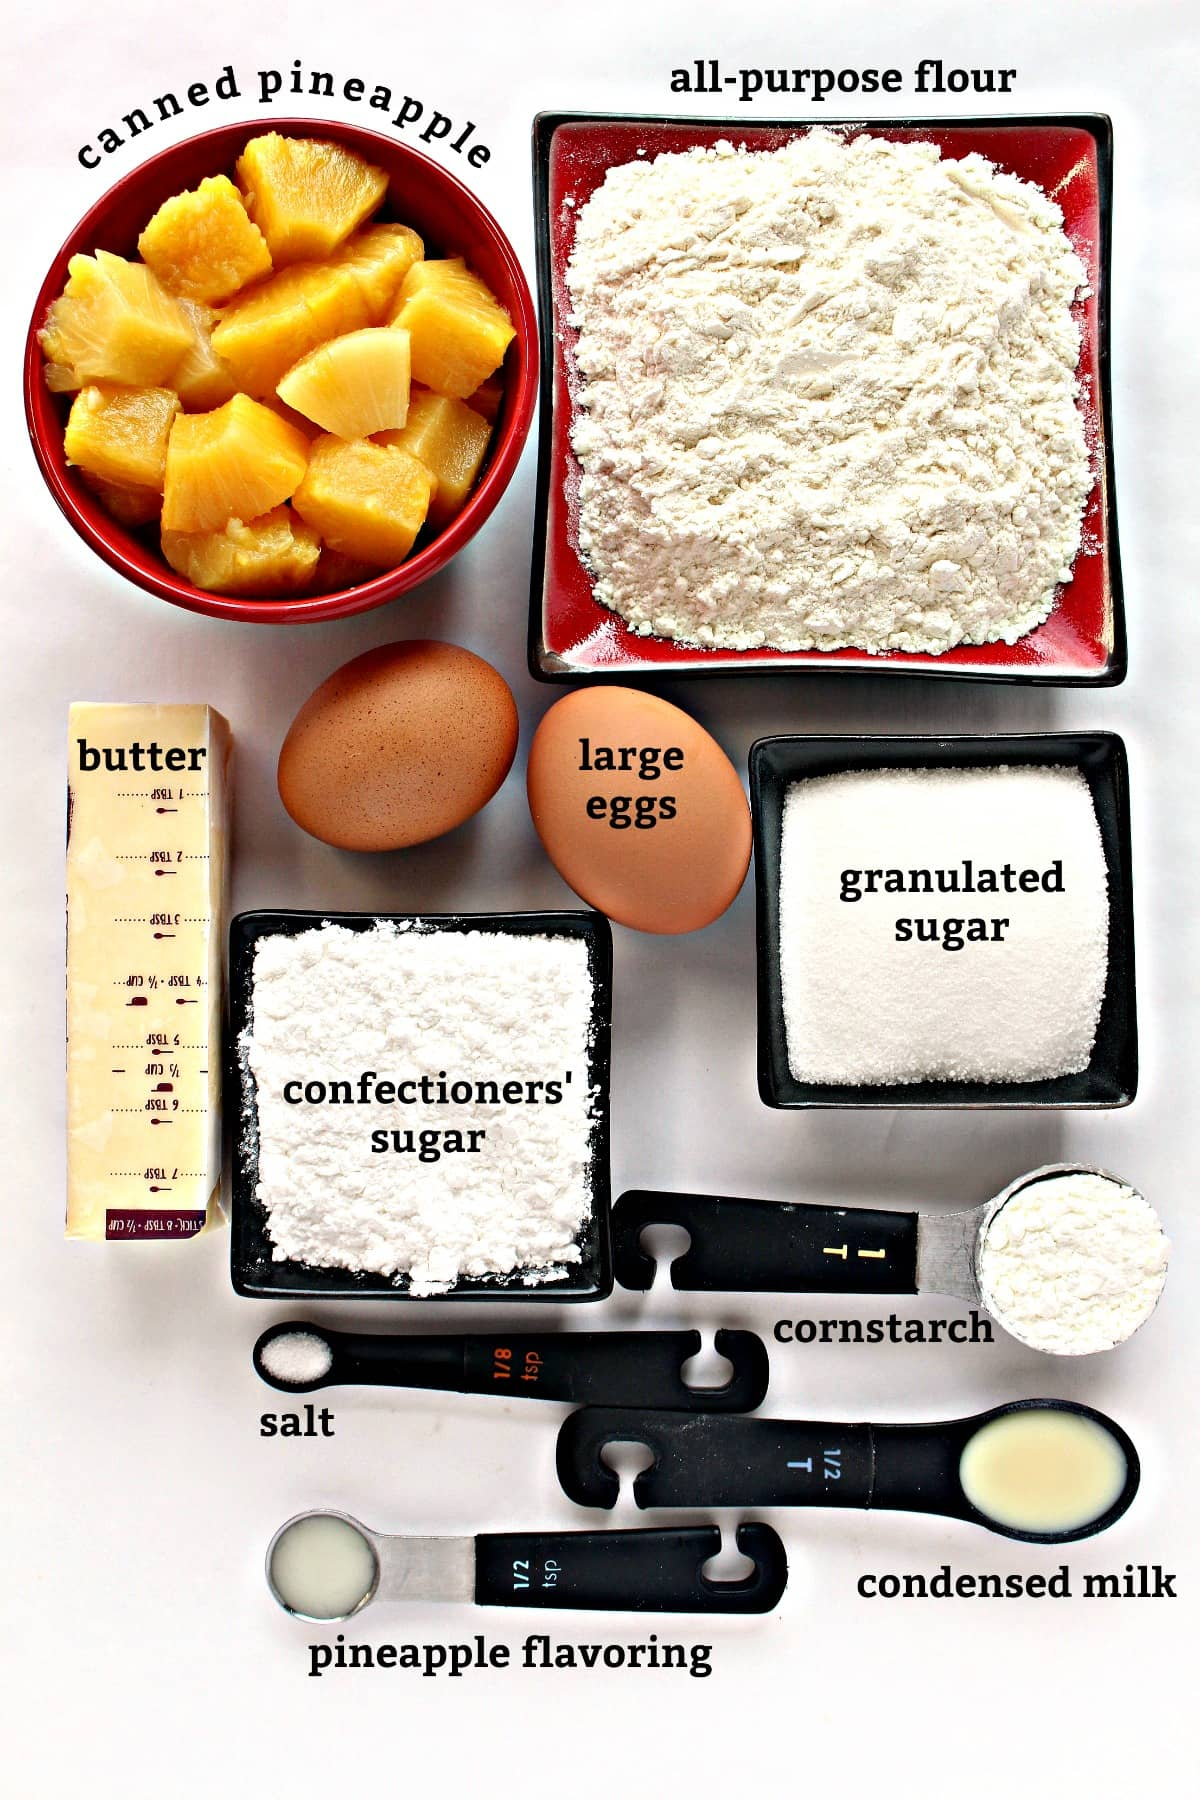 Recipe ingredients with text labels: canned pineapple, flour, butter, eggs, sugar, cornstarch, condensed milk, pineapple flavoring.